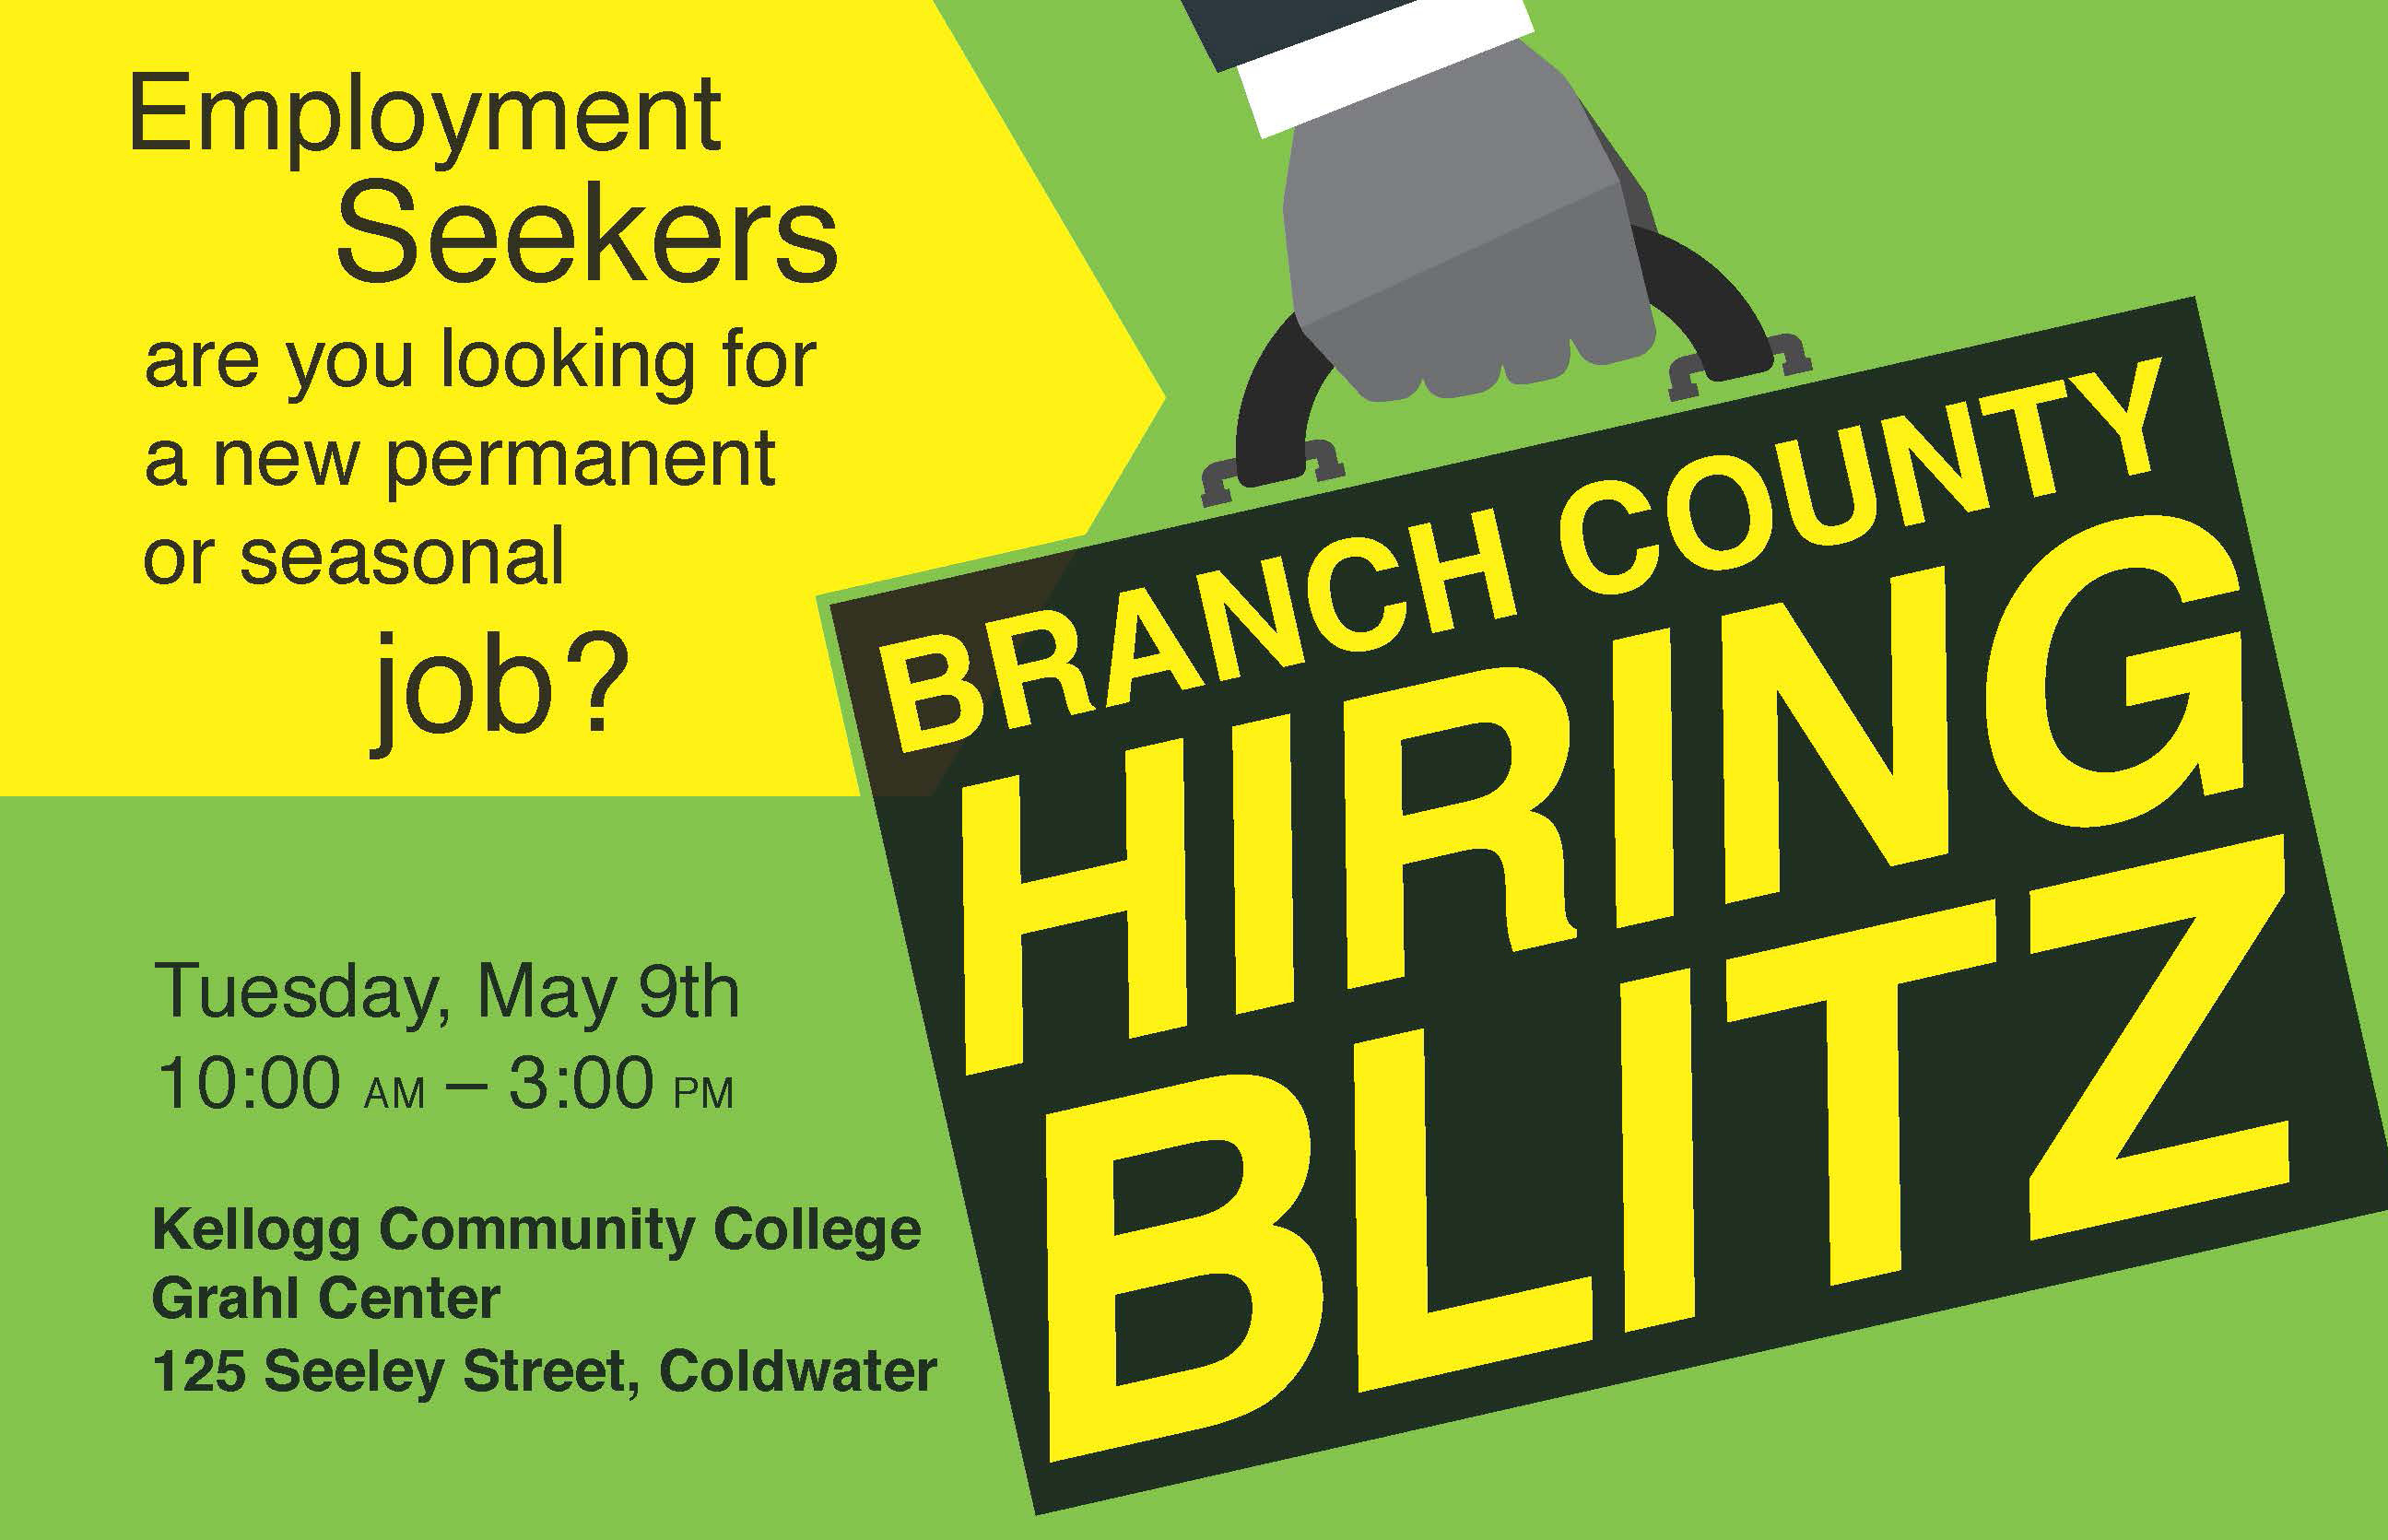 A text slide promoting the May 9 Branch County Hiring Blitz at the Grahl Center in Coldwater.